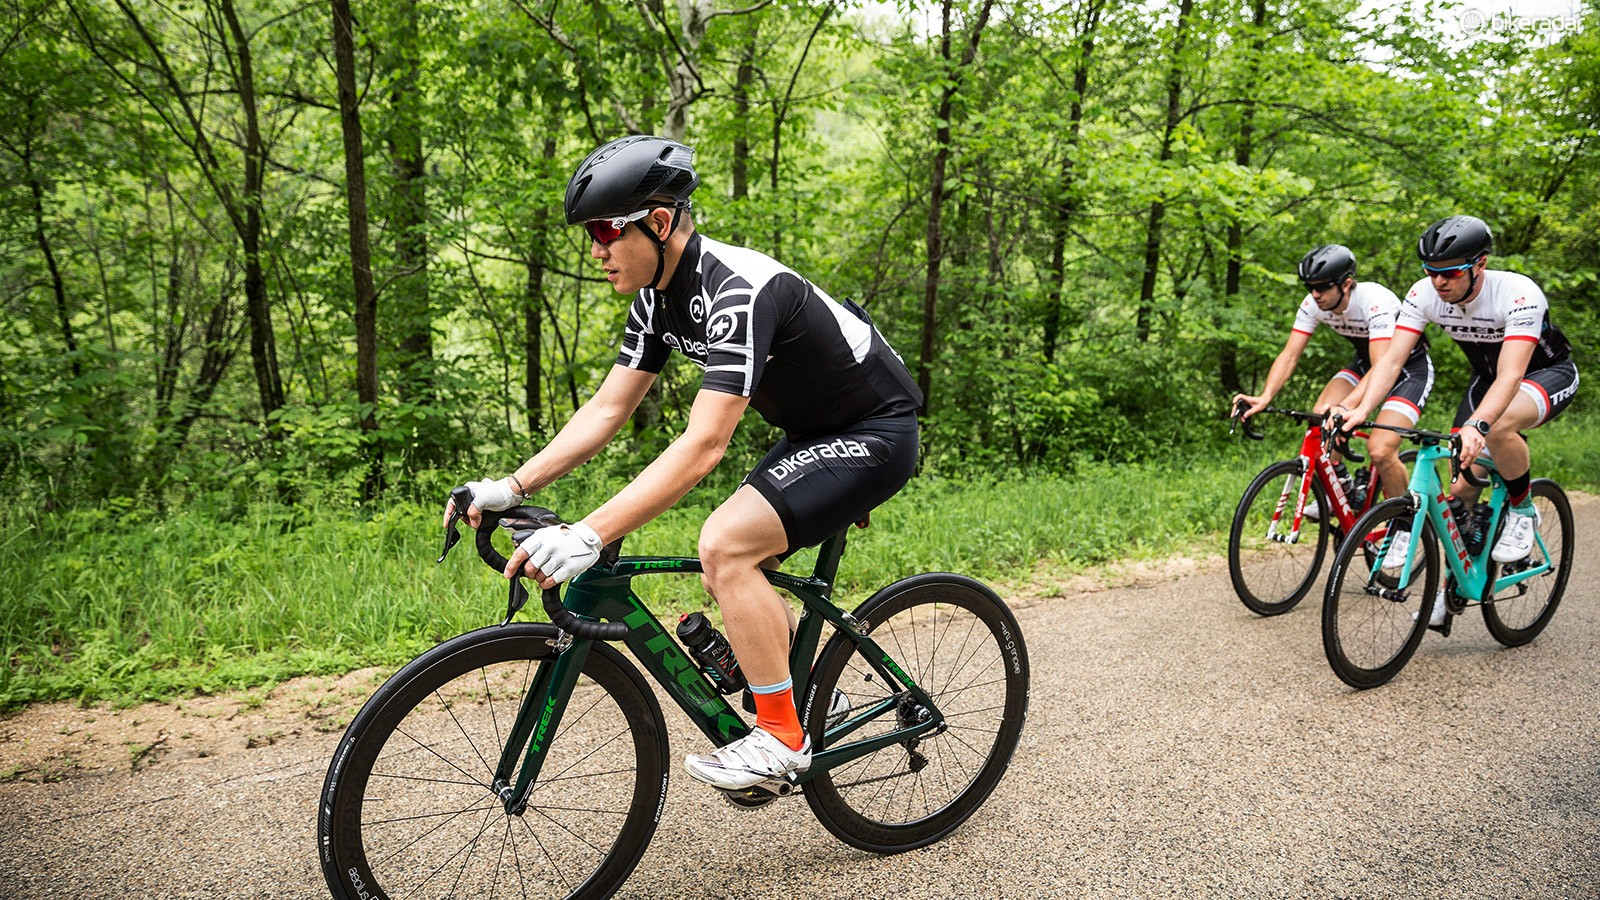 The new Trek Madone 9-Series may be super quick in terms of aerodynamics but it doesn't ride like most other aero bikes